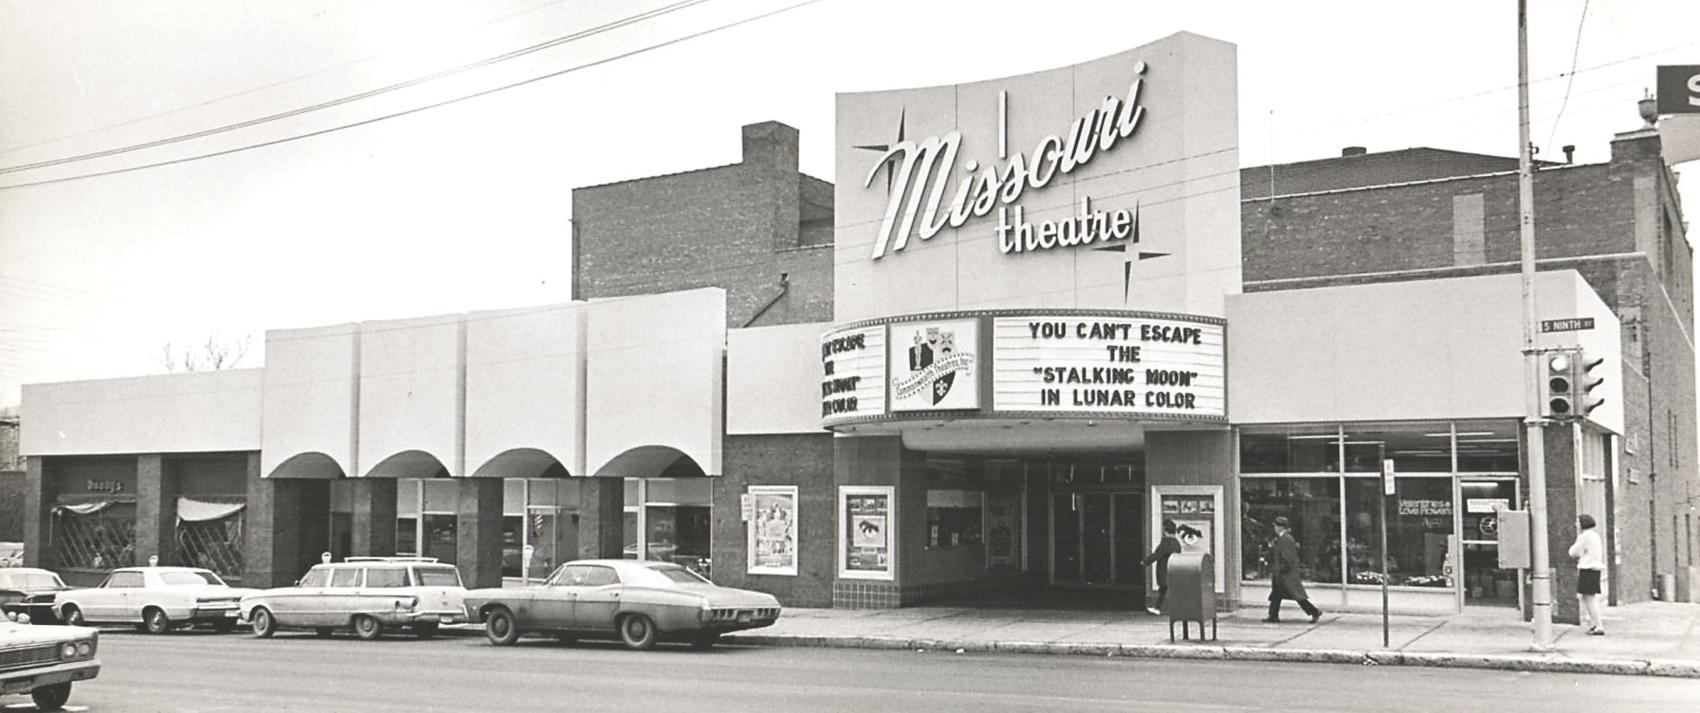 "When the Missouri Theatre opened its doors in 1928, it billed itself as a ""$400,000 show house of unrivaled beauty and extravagance."" It was the first palace-style movie theater in mid-Missouri."" ~ Missourian archives"